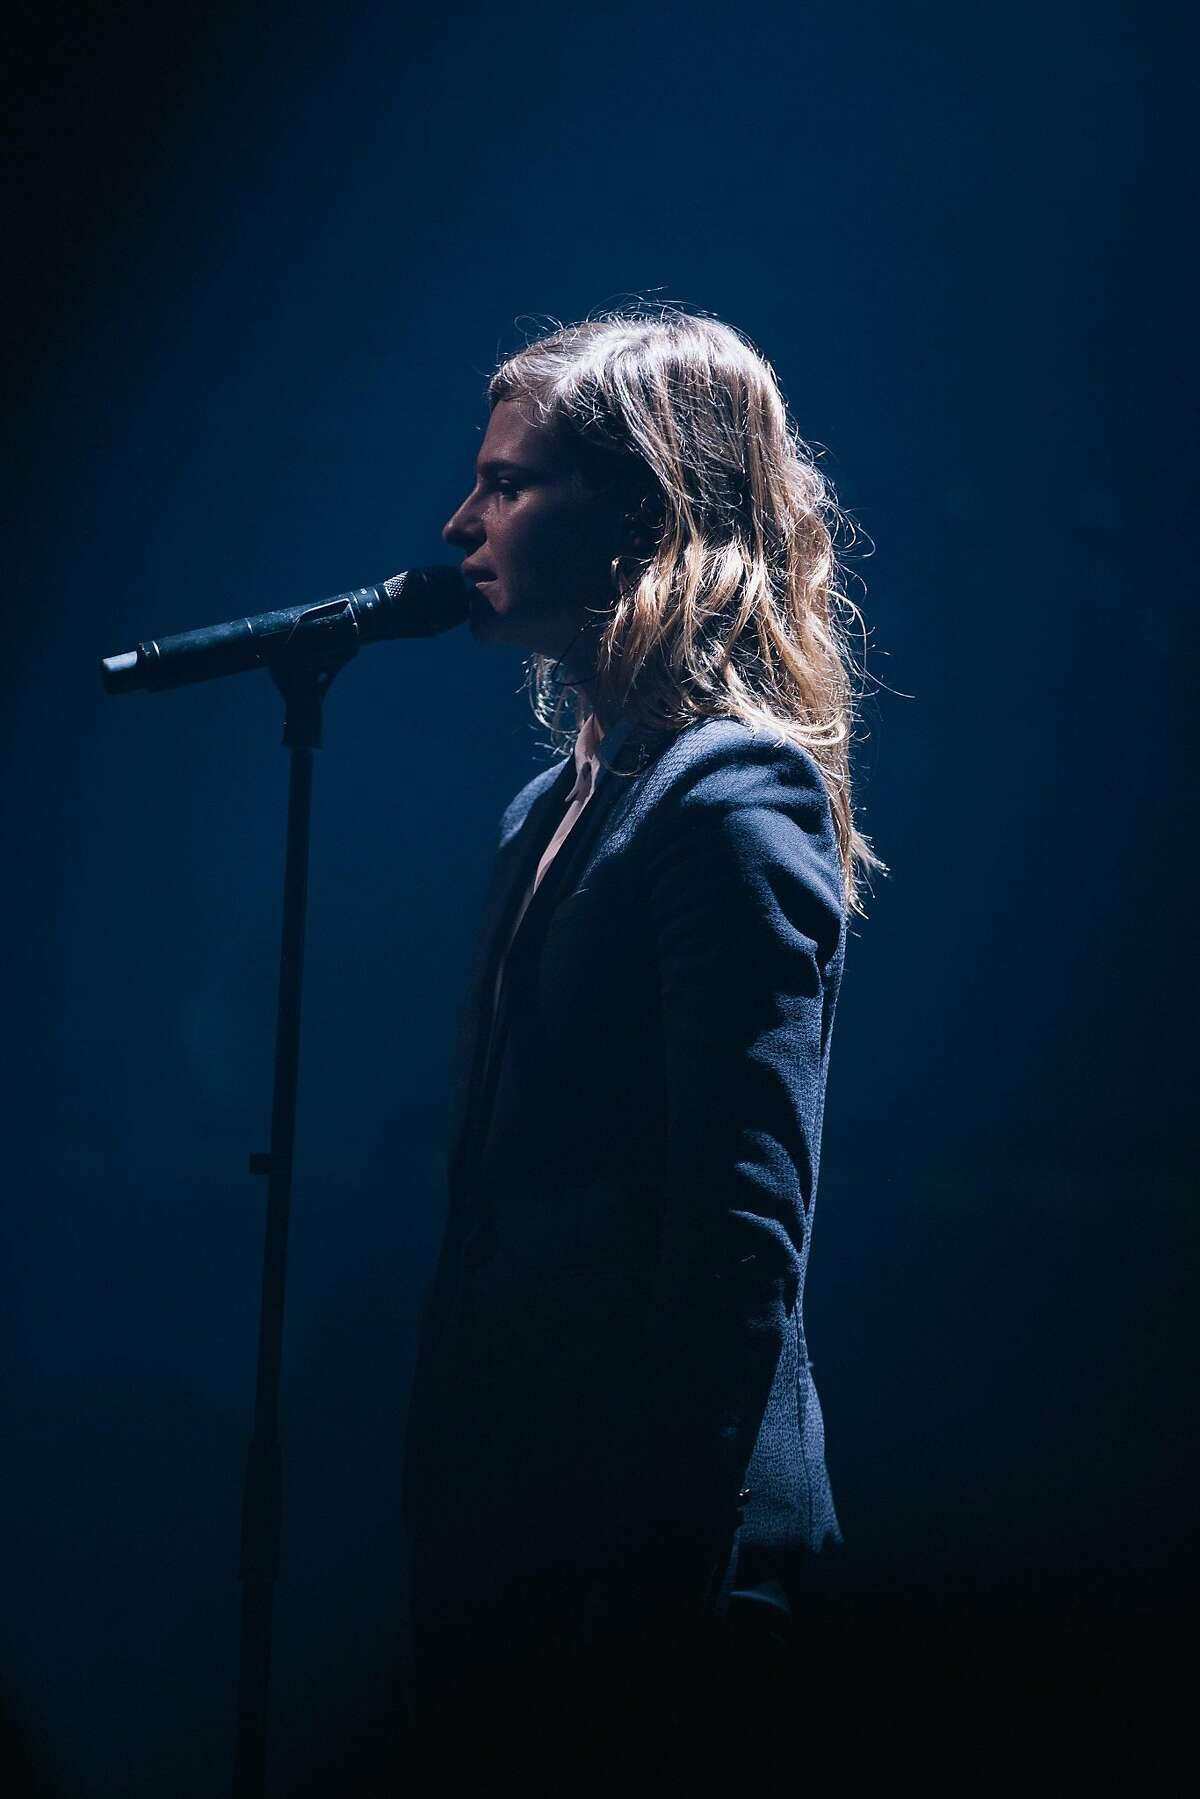 Christine and the Queens is performing at Treasure Island Music Festival.